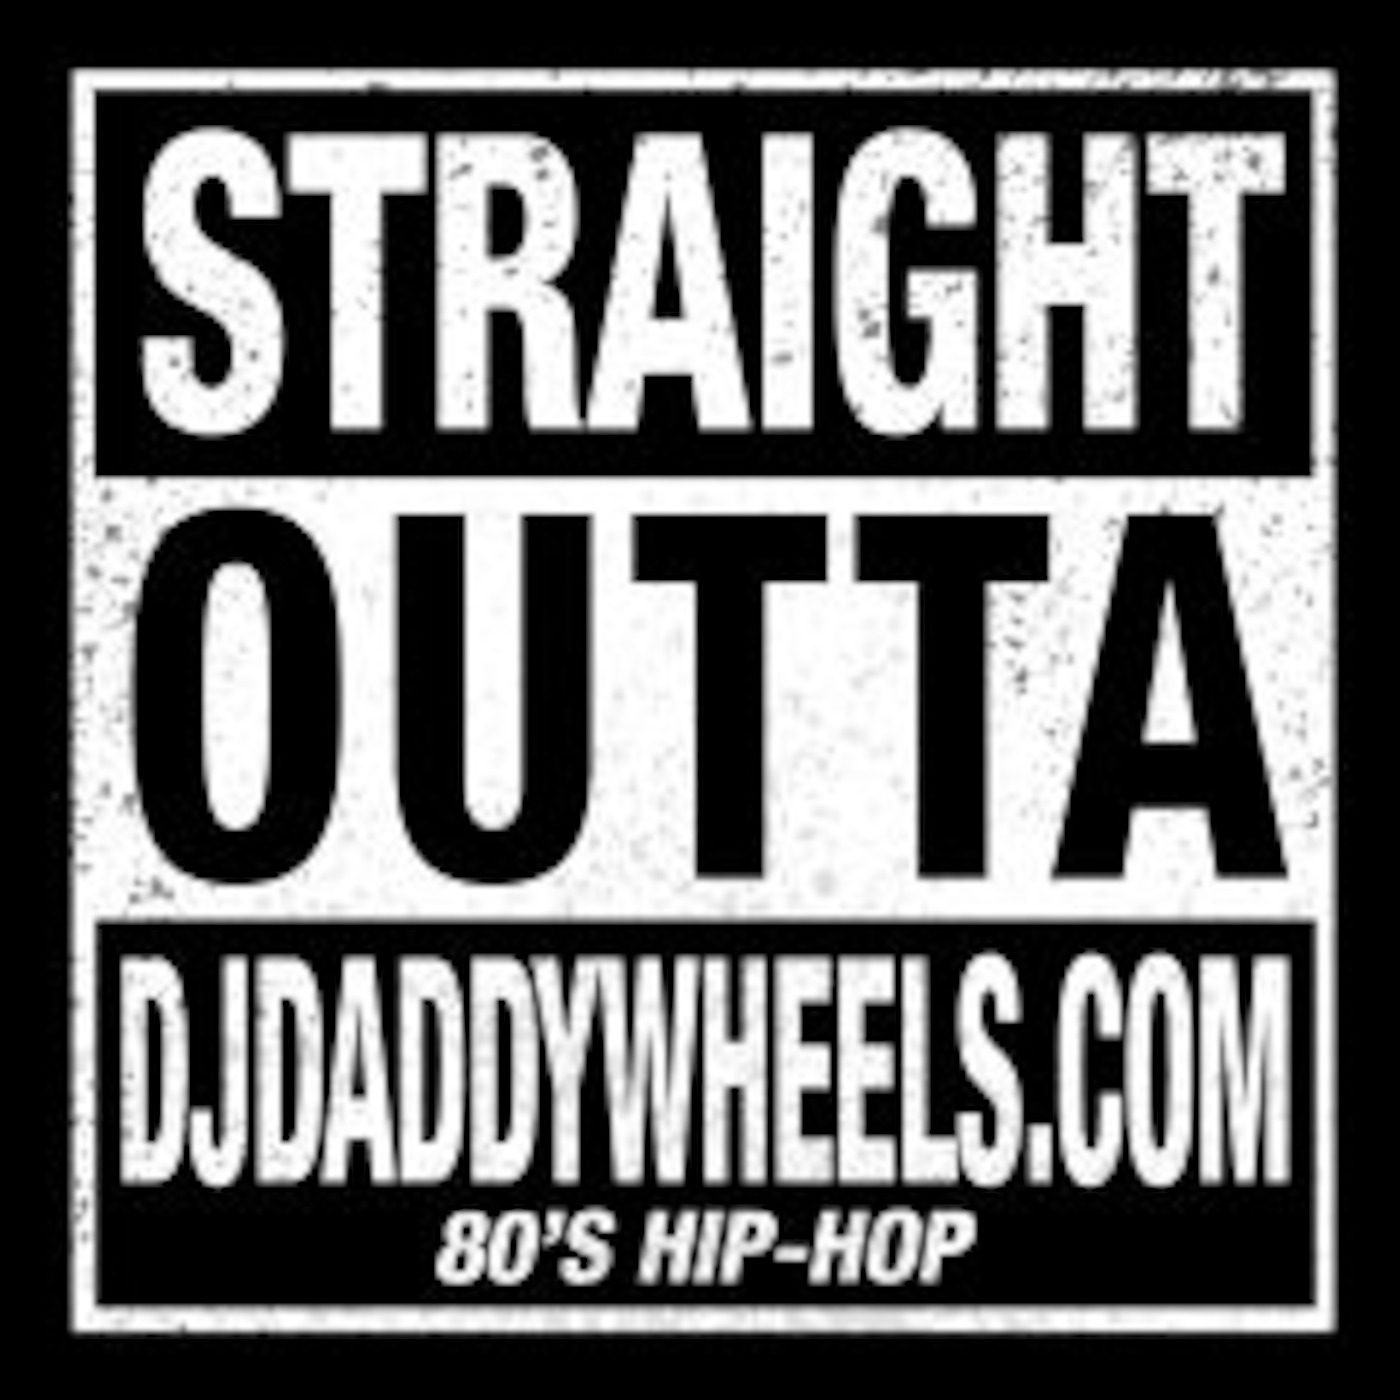 STRAIGHT OUTTA DJ DADDYWHEELS: 80'S HIP-HOP DJ Daddywheels Live In